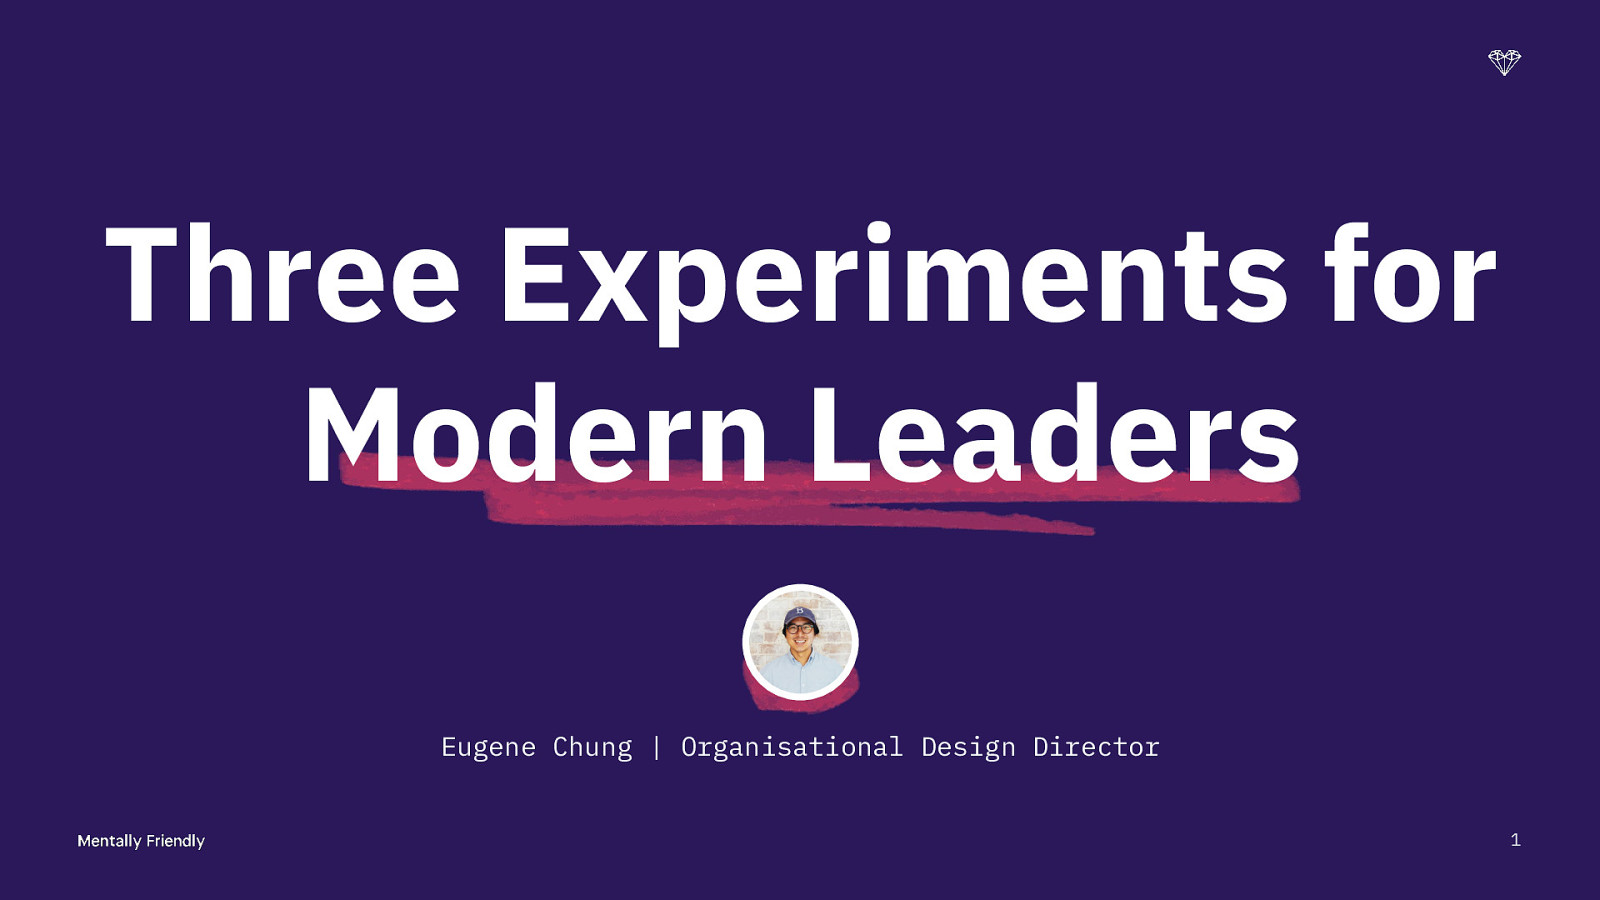 Three Experiments for Modern Leaders